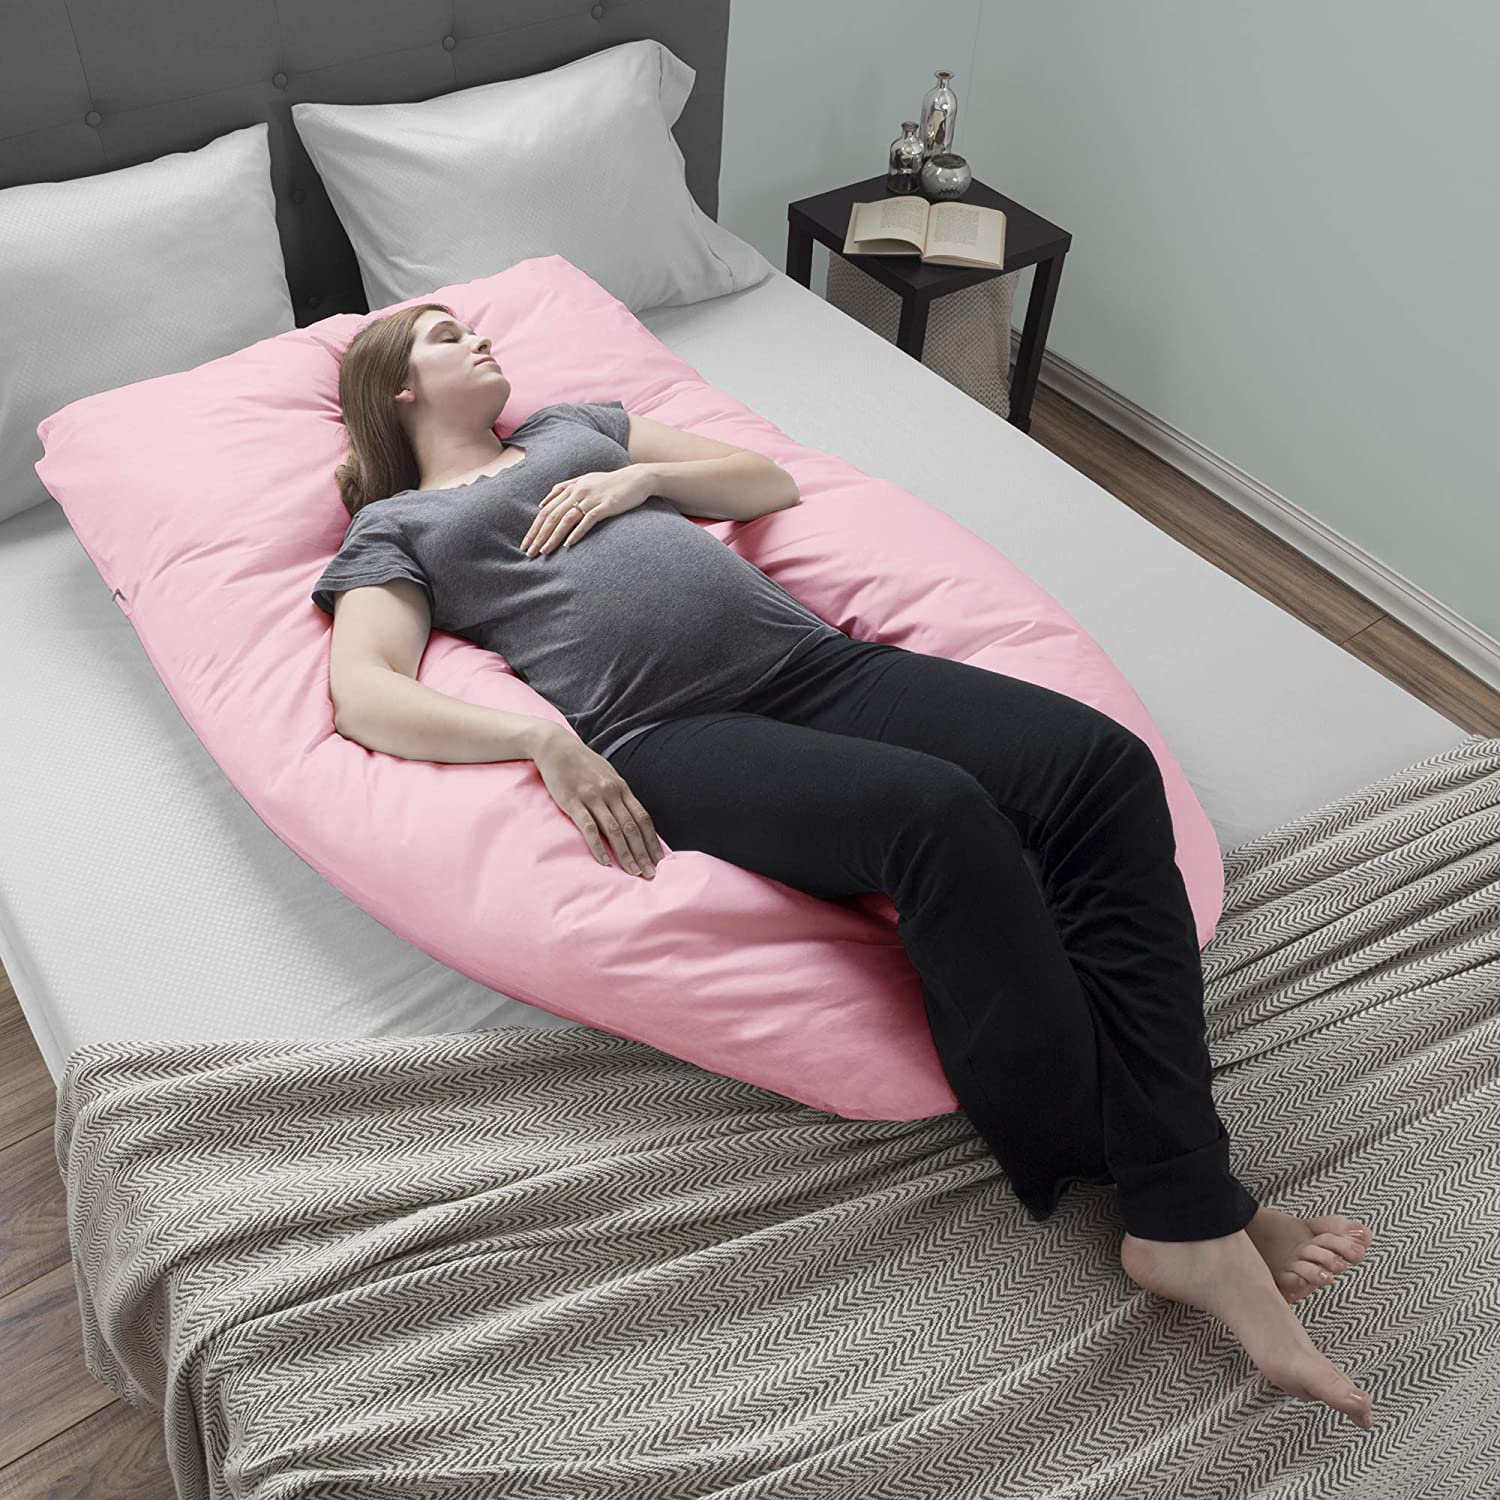 Full Body Maternity Pillow with Removable Cover and Contoured U-Shape Design for Back//Body Support by Lavish Home Collection Pregnancy Pillow Pink Trademark 64-PREGN-U-PNK